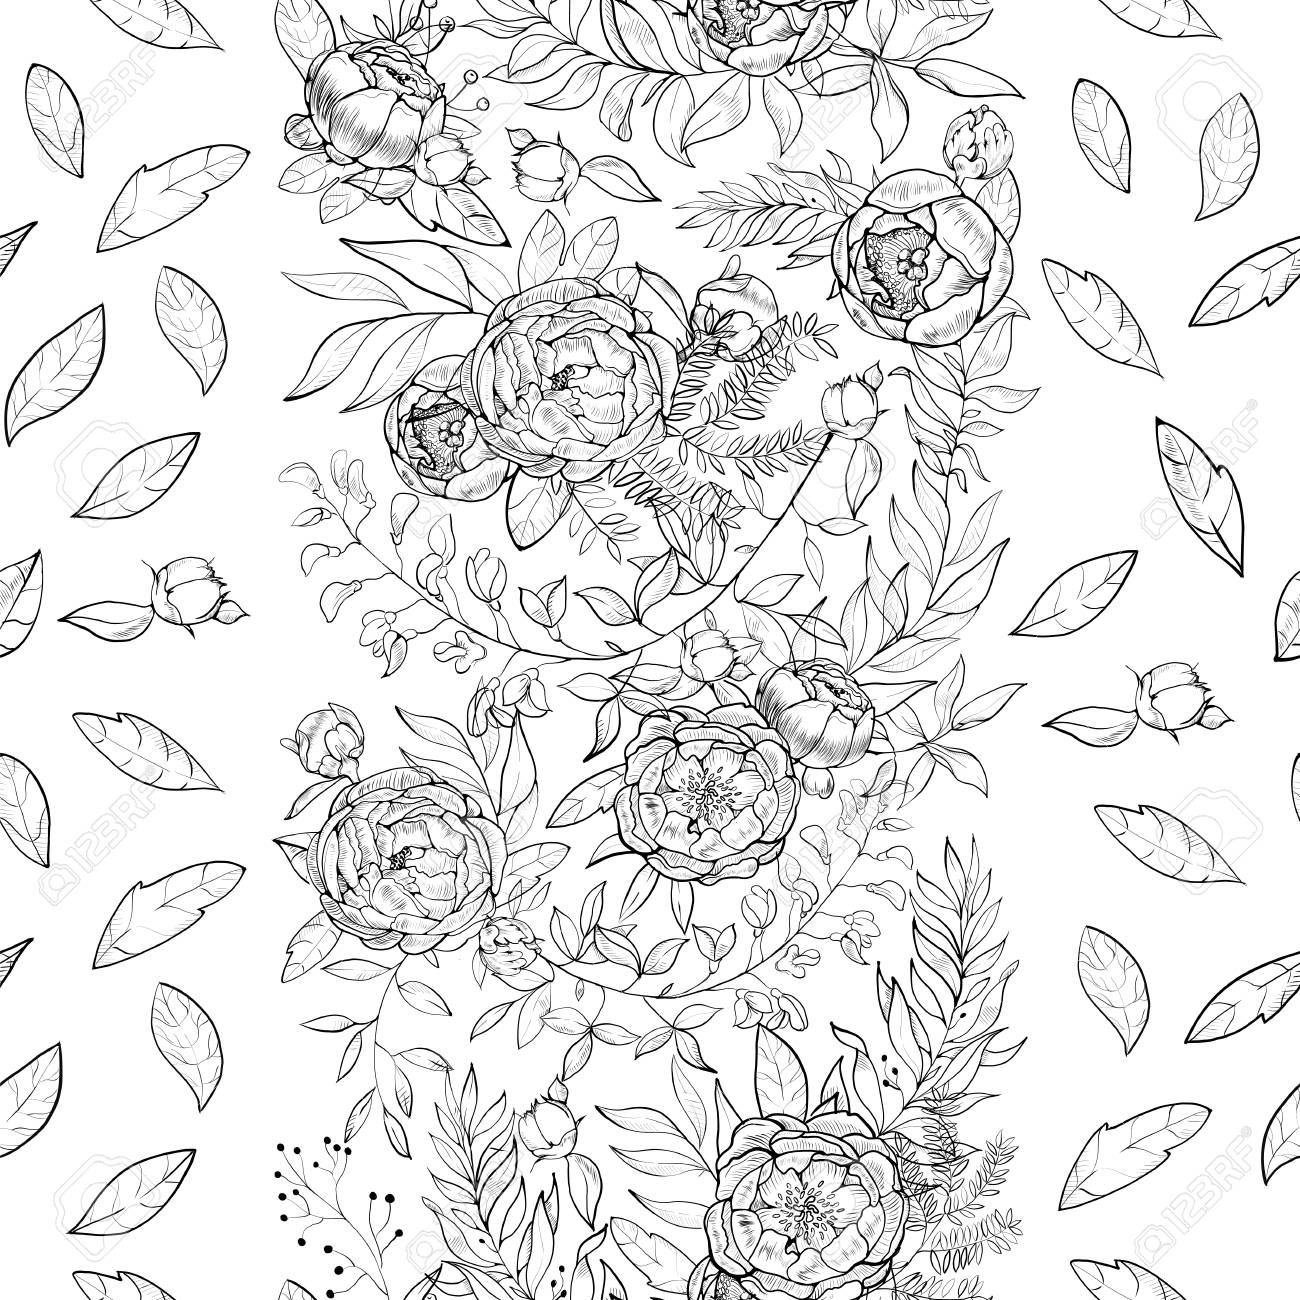 Vintage Background Engraving Seamless Floral Pattern With Bouquets